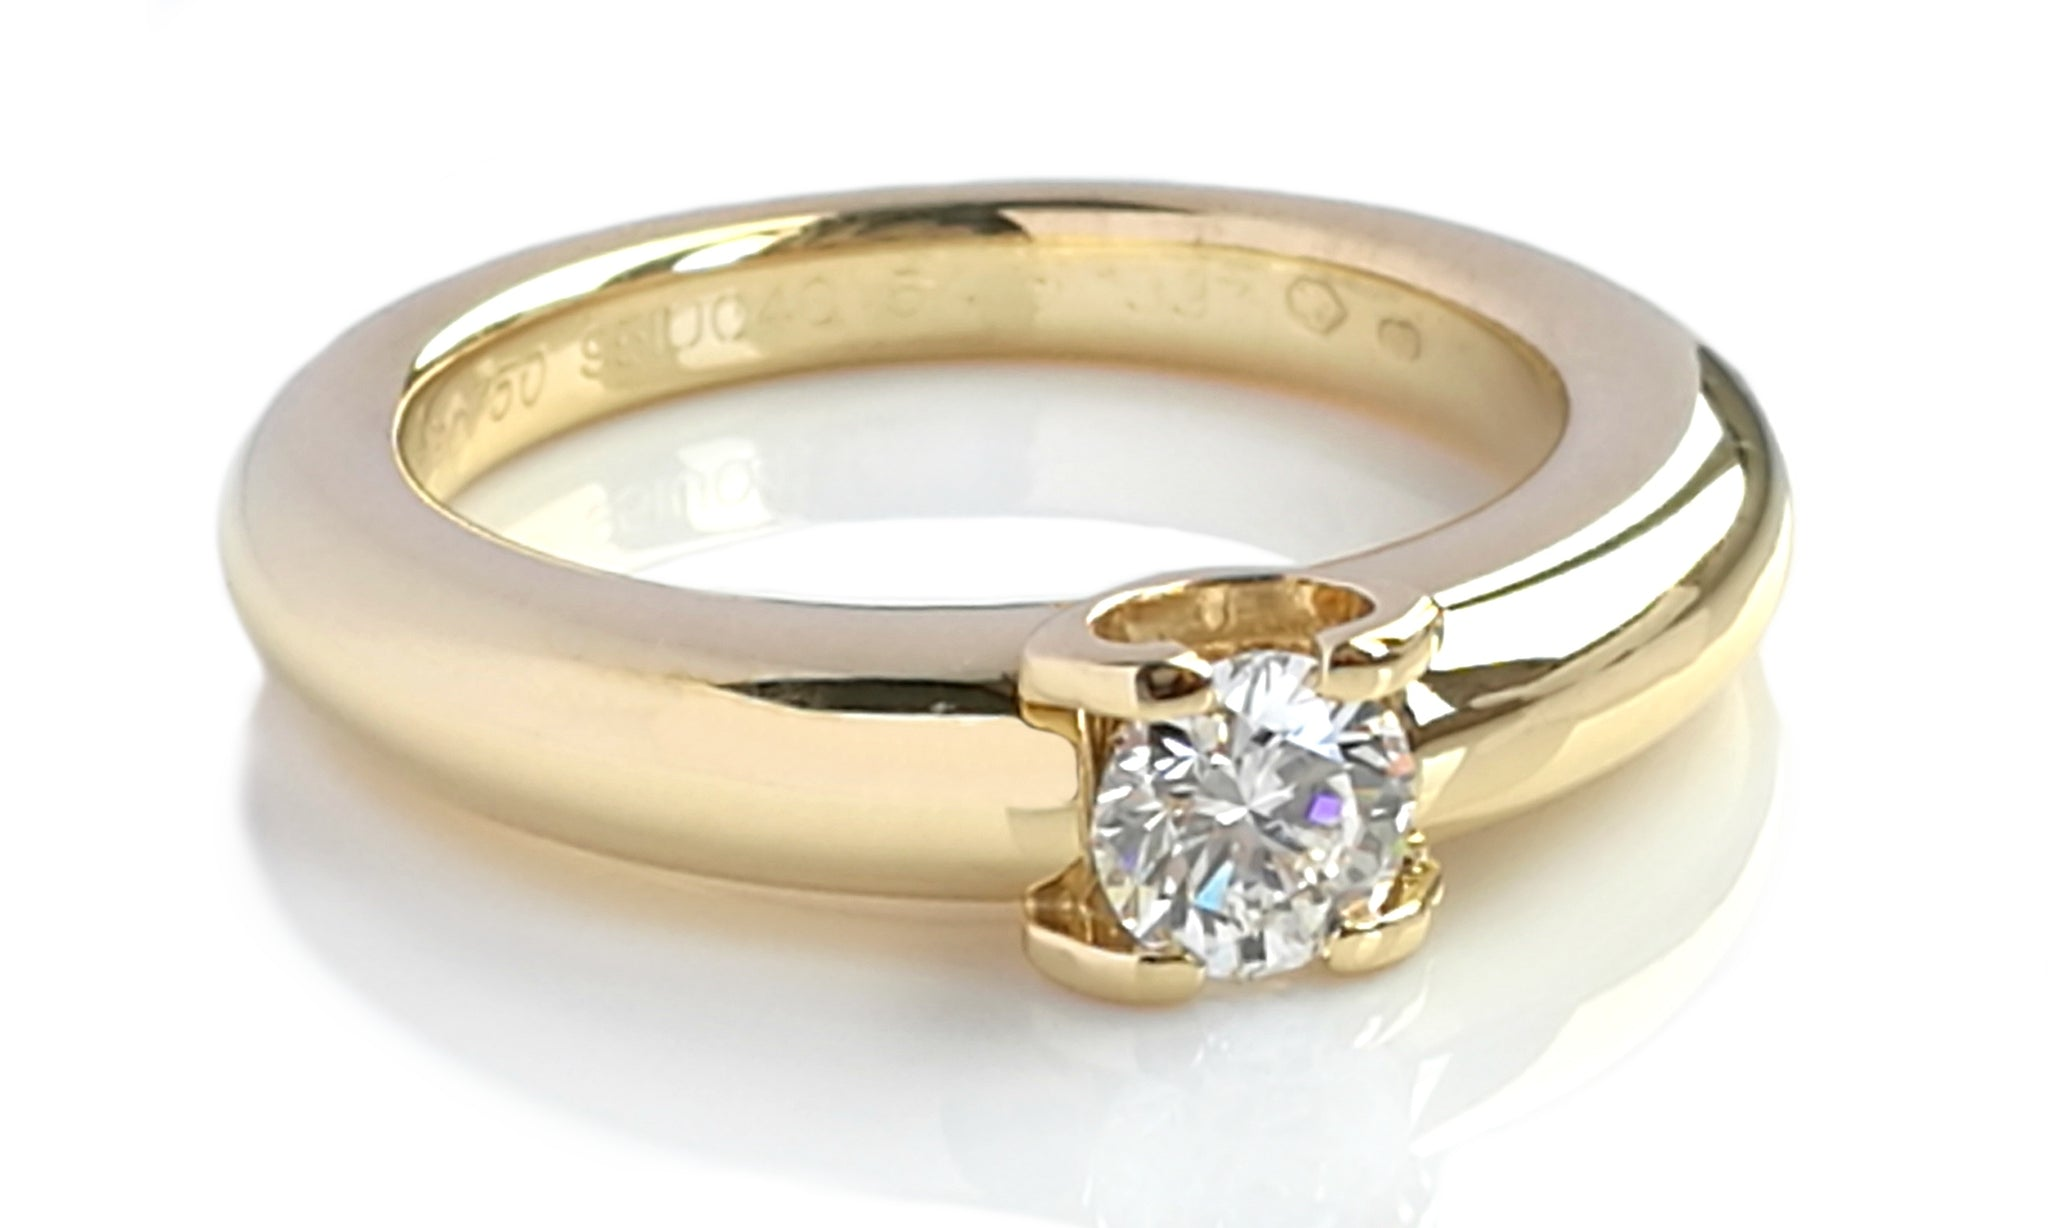 Cartier 0.40ct G/VS Round Brilliant Diamond Engagement Ring in 18k Yellow Gold